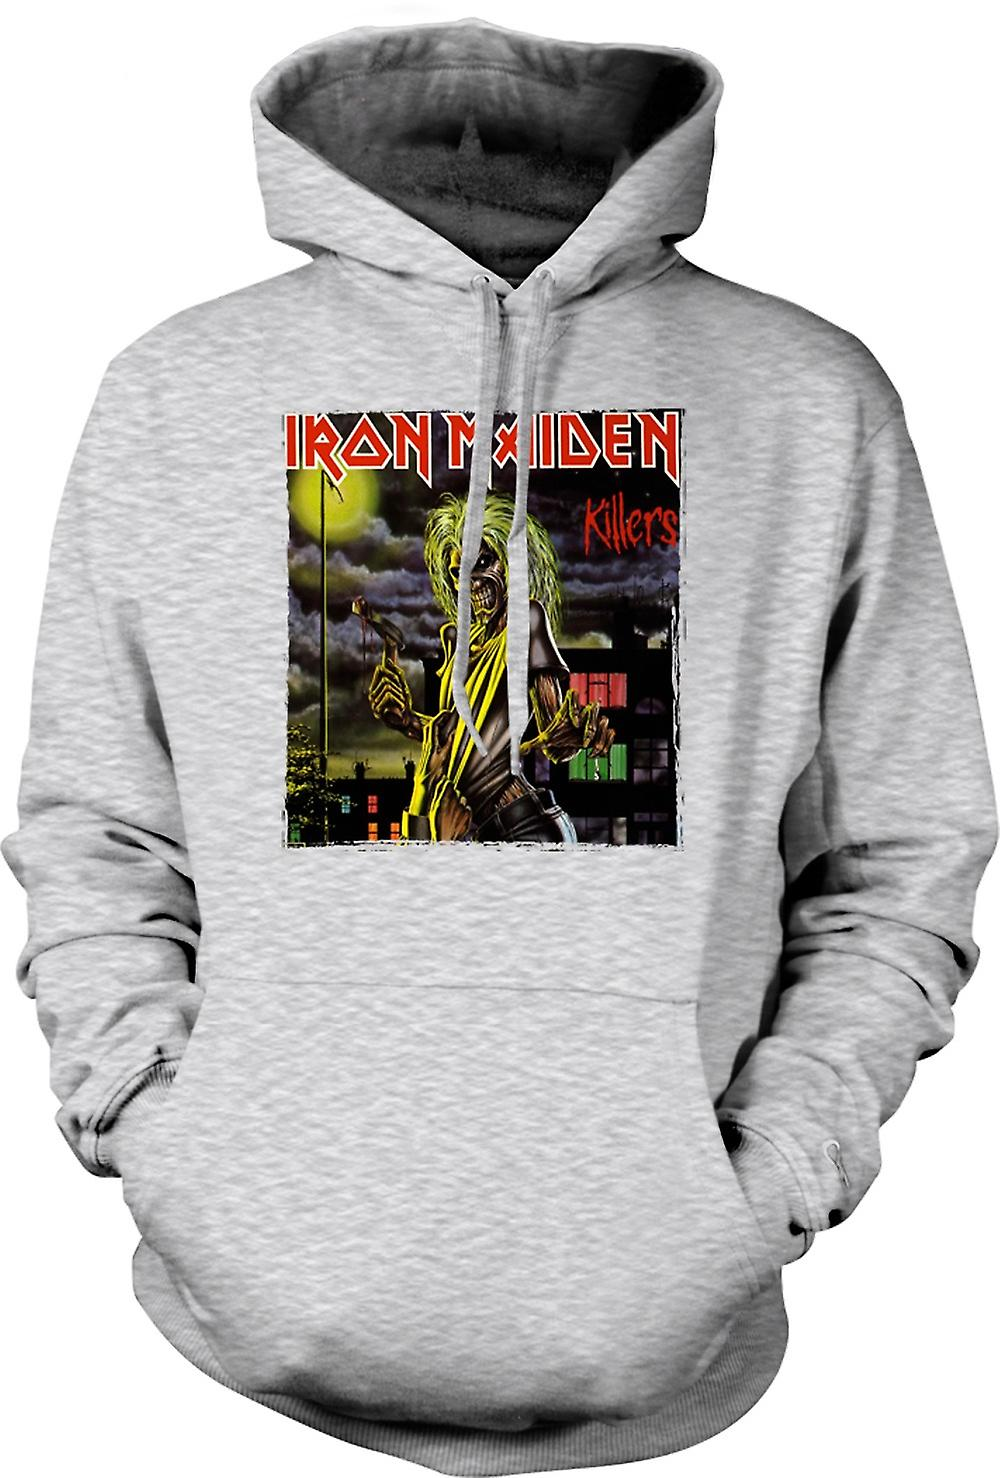 Mens Hoodie - Iron Maiden - Killers Album Art